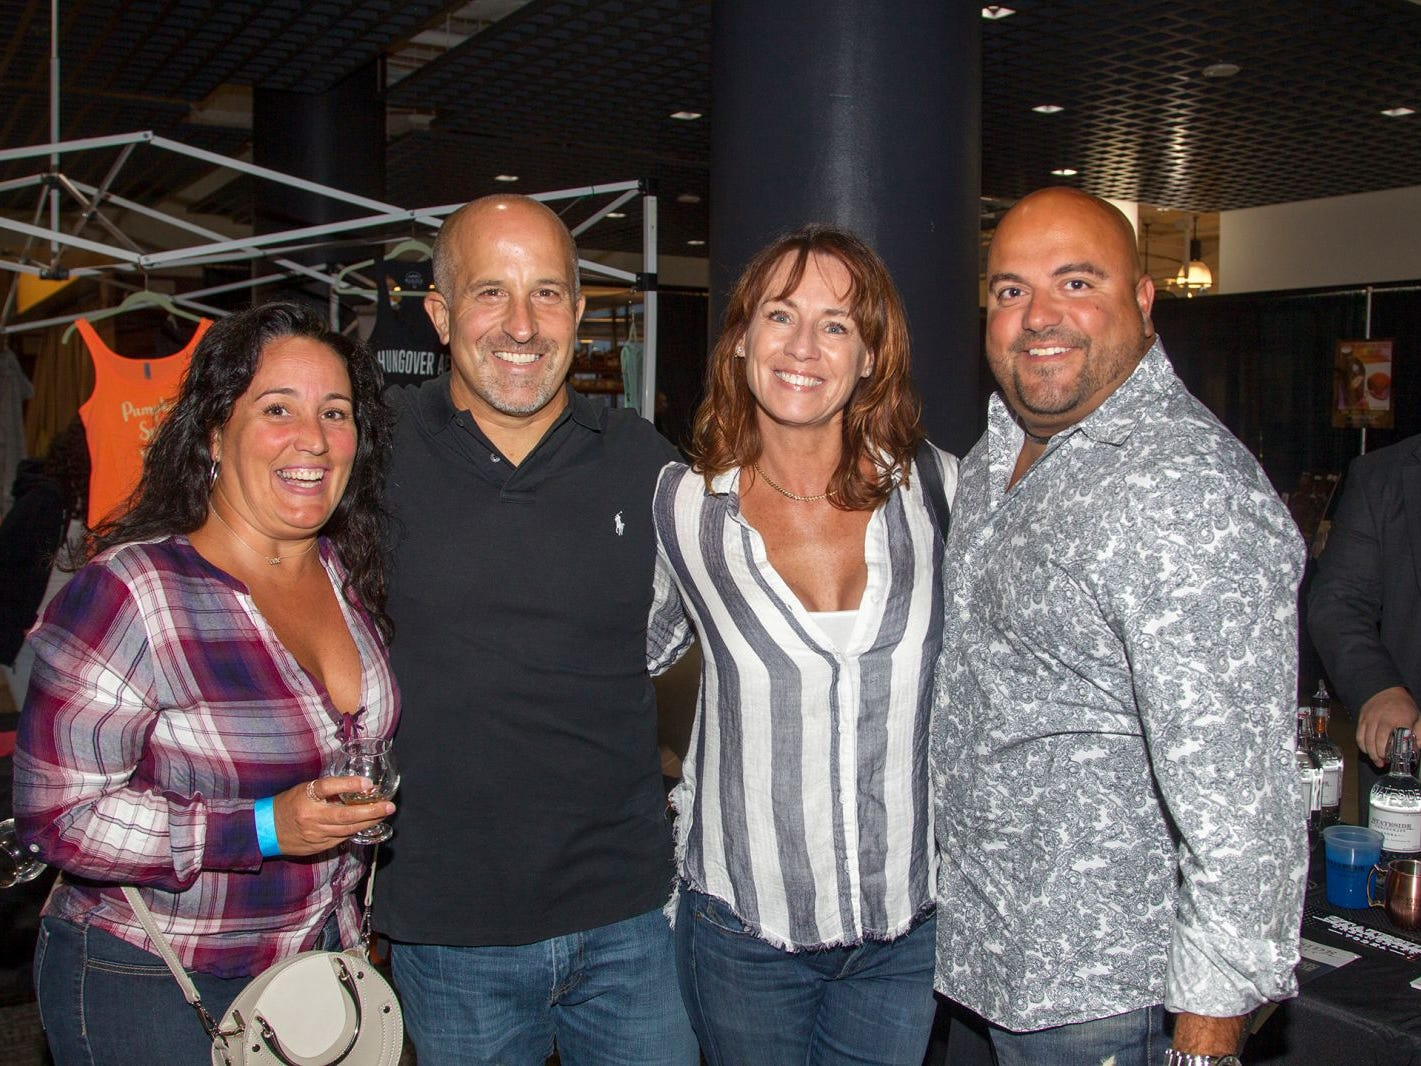 Angela, Mark, Helen, Chris. Jersey City Craft Distillery Fest at the Harborside Atrium featured more than 100 styles of spirits. Guests had the chance to taste craft-distilled spirits from moonshine, rum, cognac, whiskey, vodka, gin, tequila and more. 09/08/2018